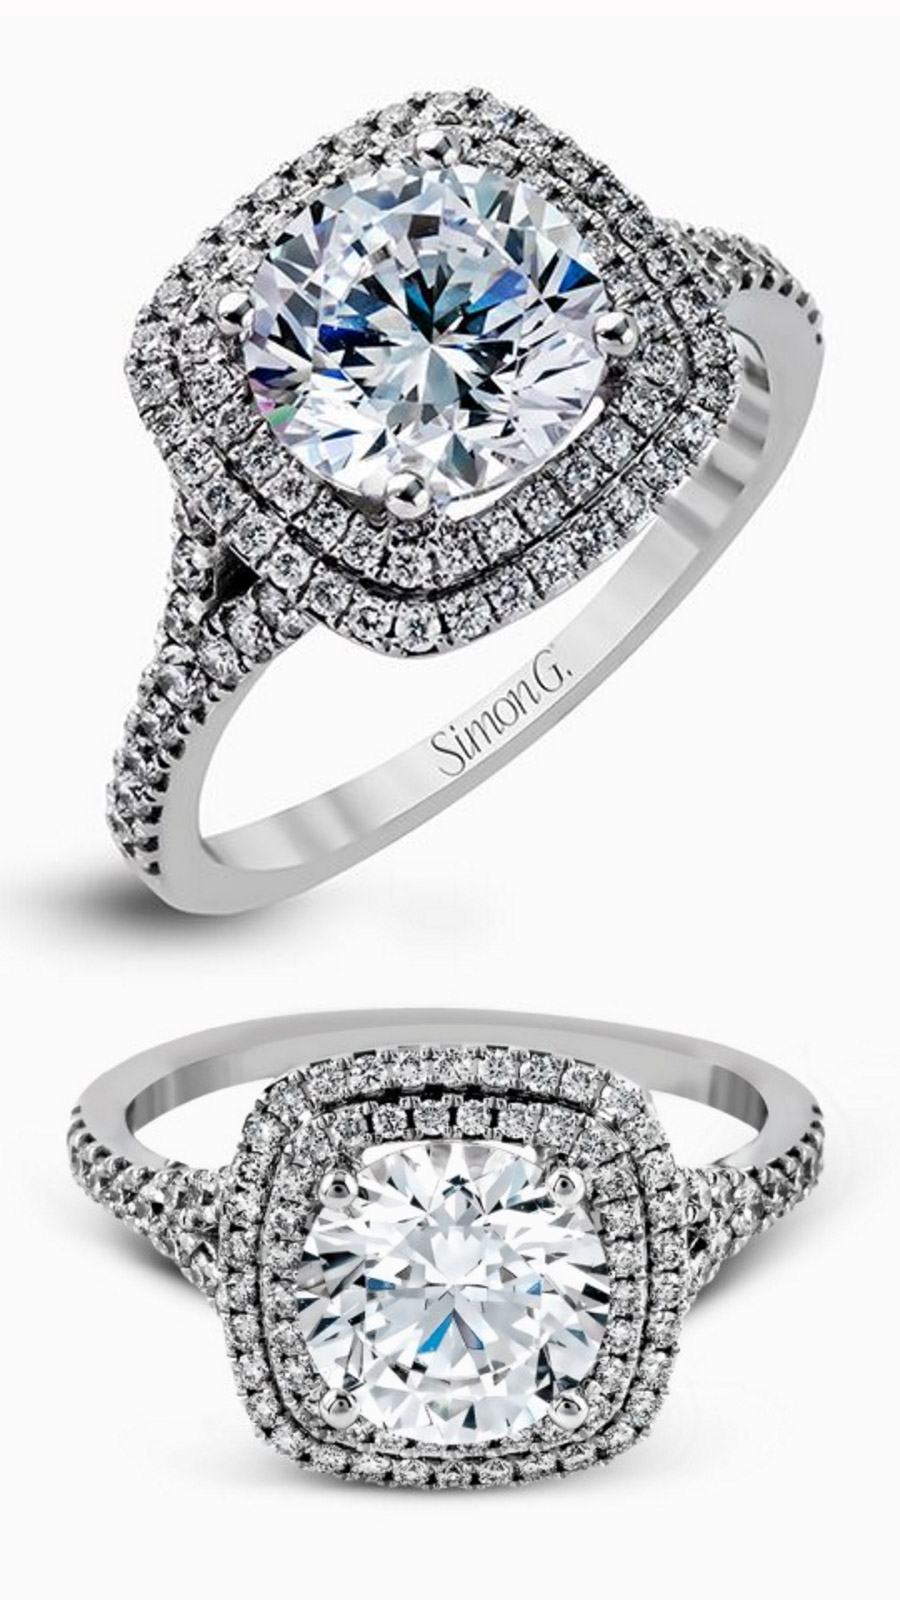 simon g gorgeous diamond engagement ring wedding band set mr2461 double halo white gold ring